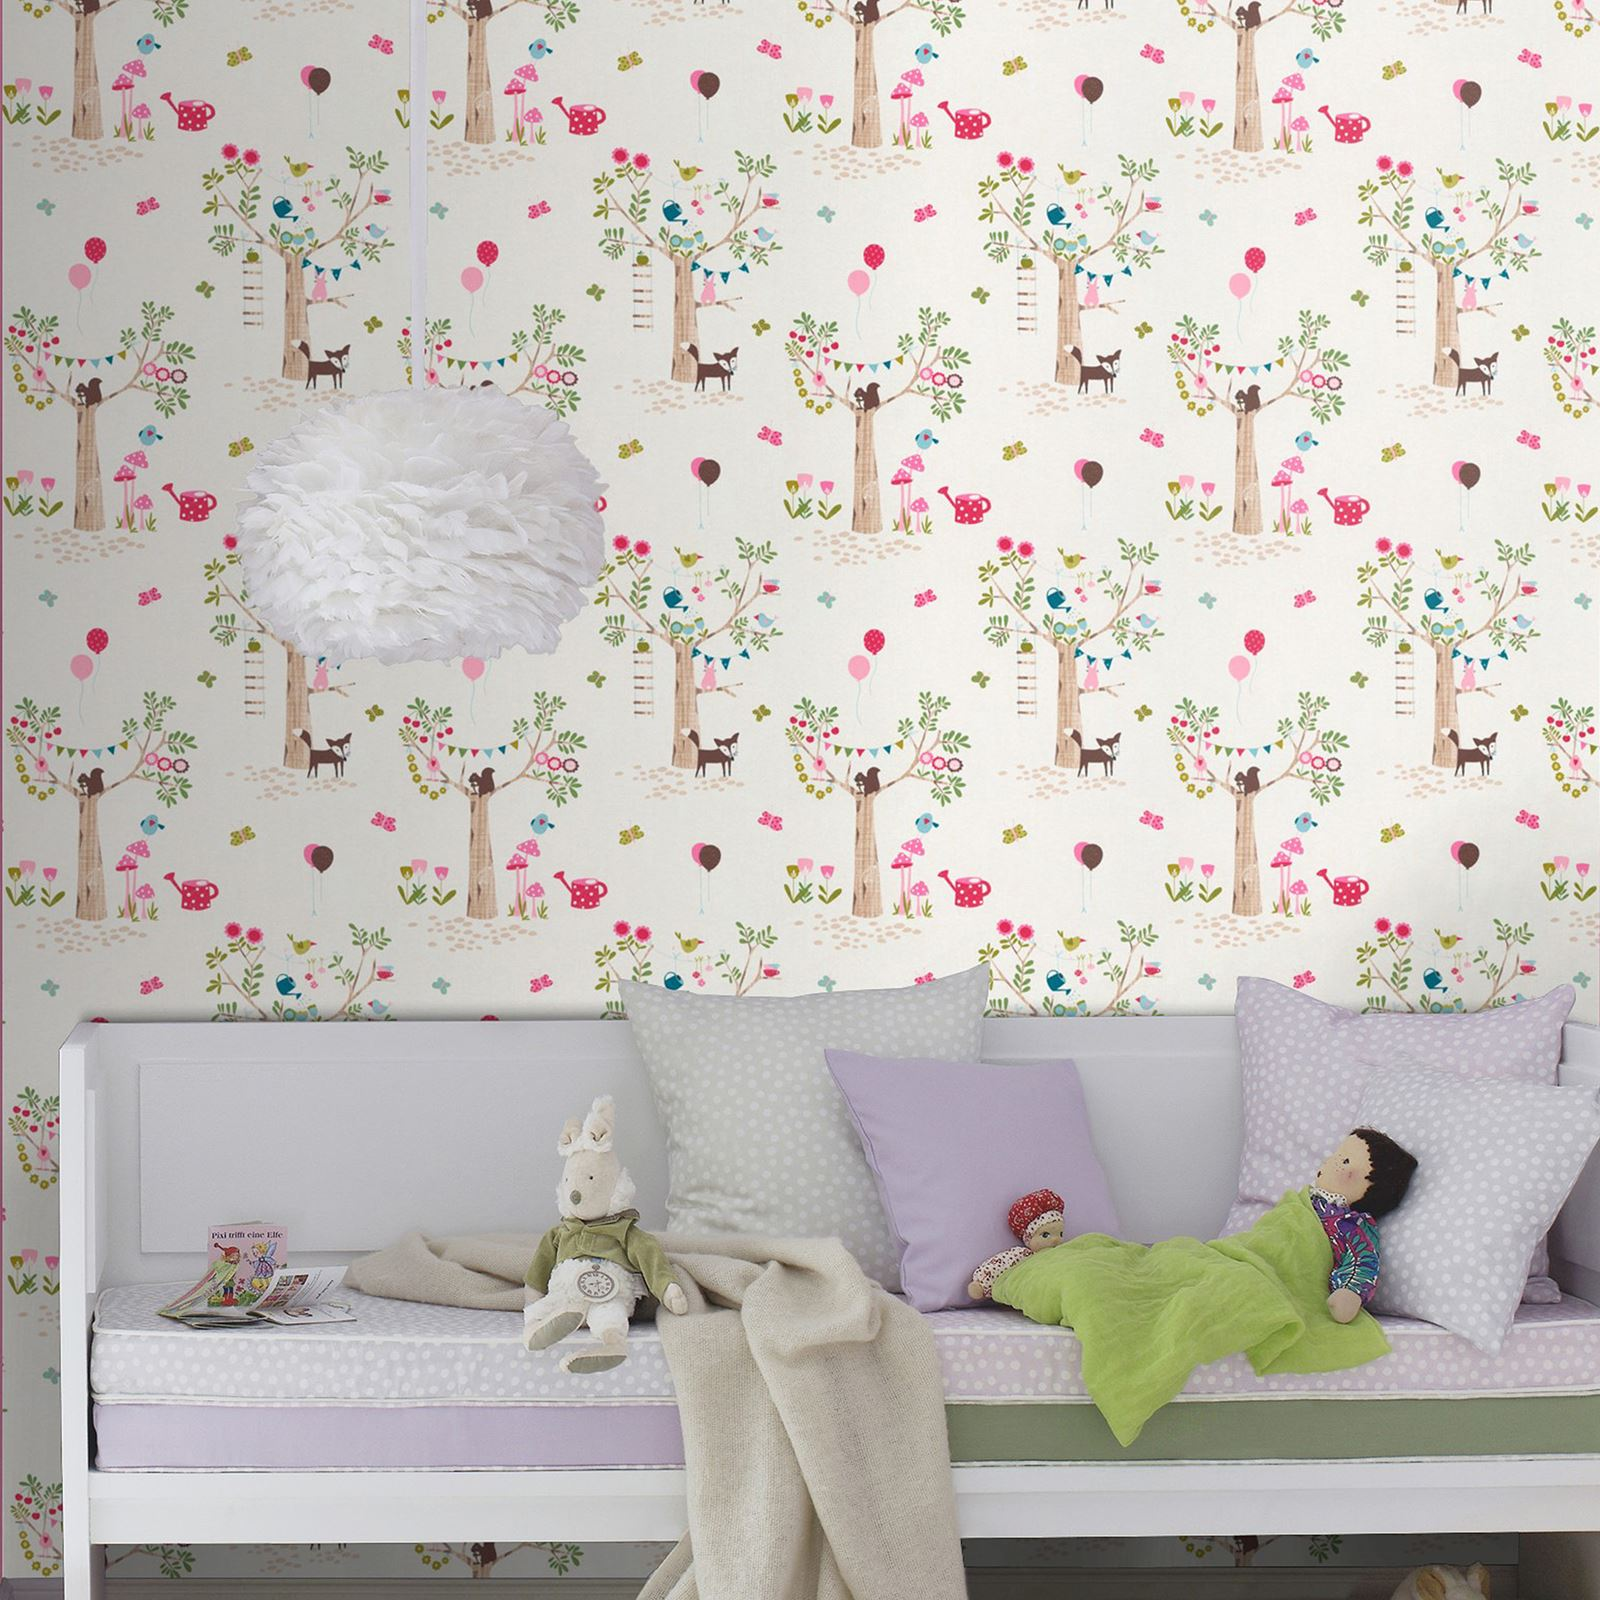 wallpaper borders for bedrooms woodland animals wallpaper amp borders bedroom amp nursery 17767